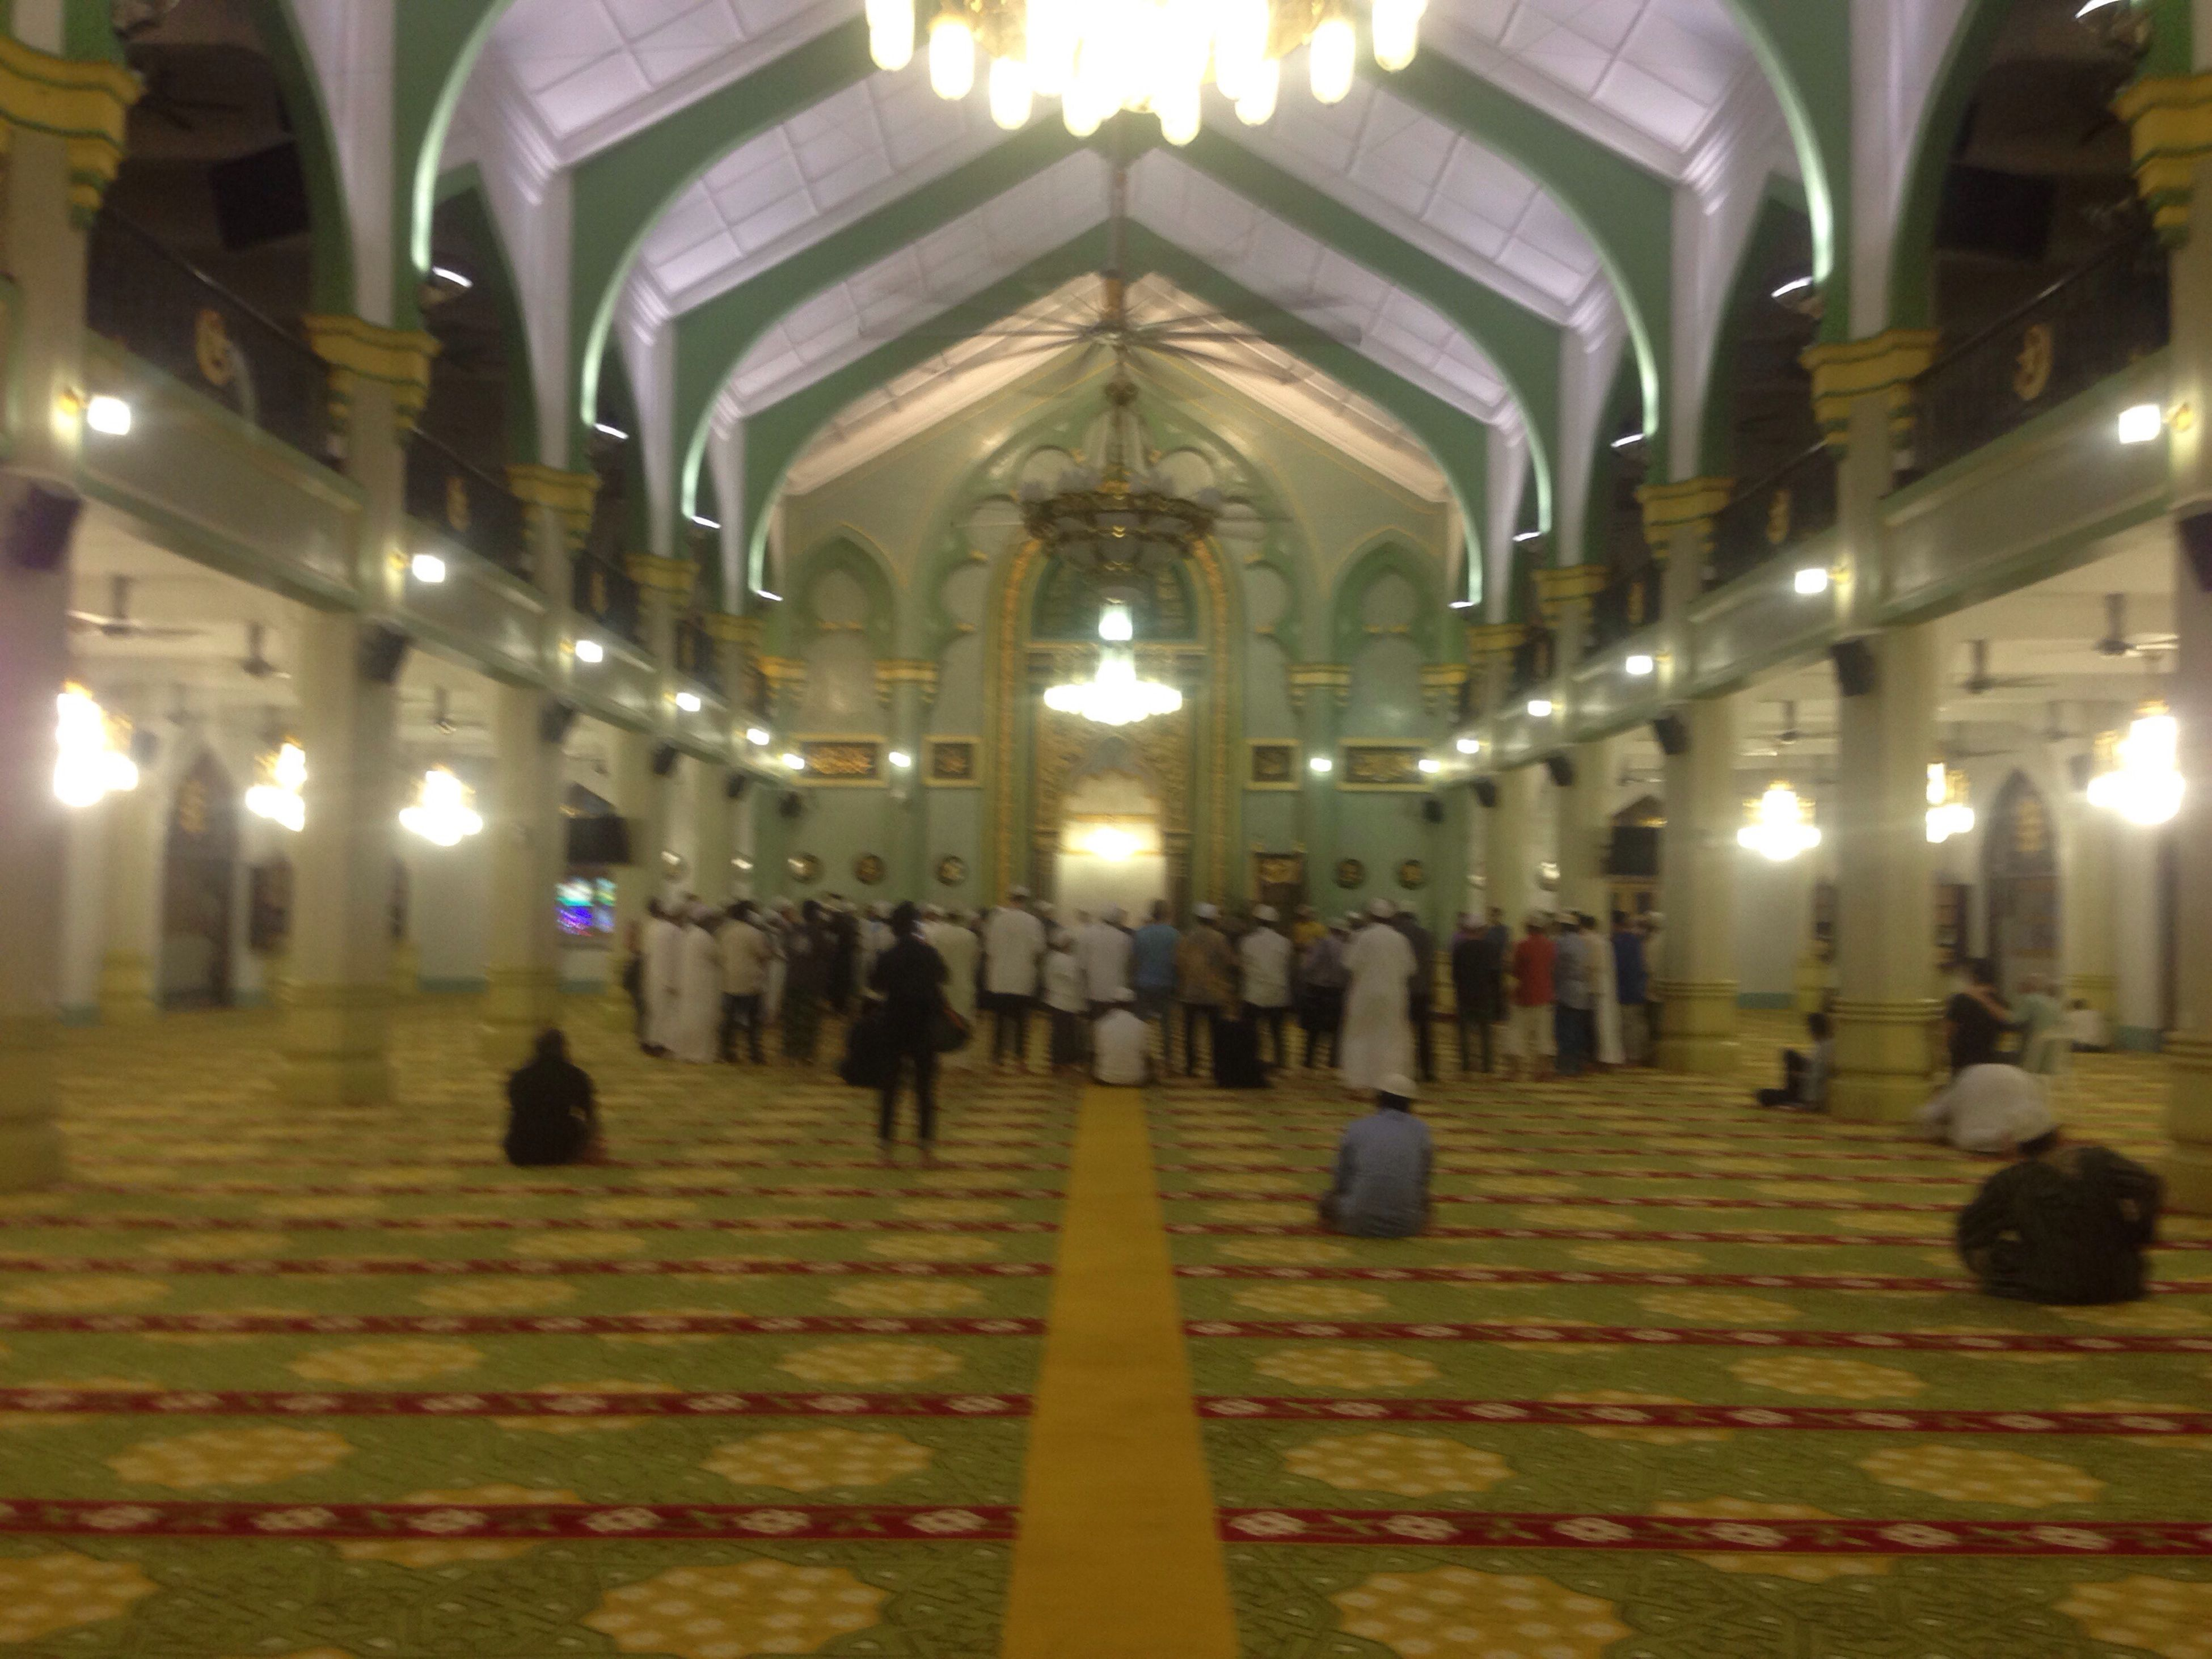 indoors, illuminated, place of worship, religion, spirituality, arch, church, lighting equipment, ceiling, architectural column, architecture, built structure, corridor, pew, person, interior, in a row